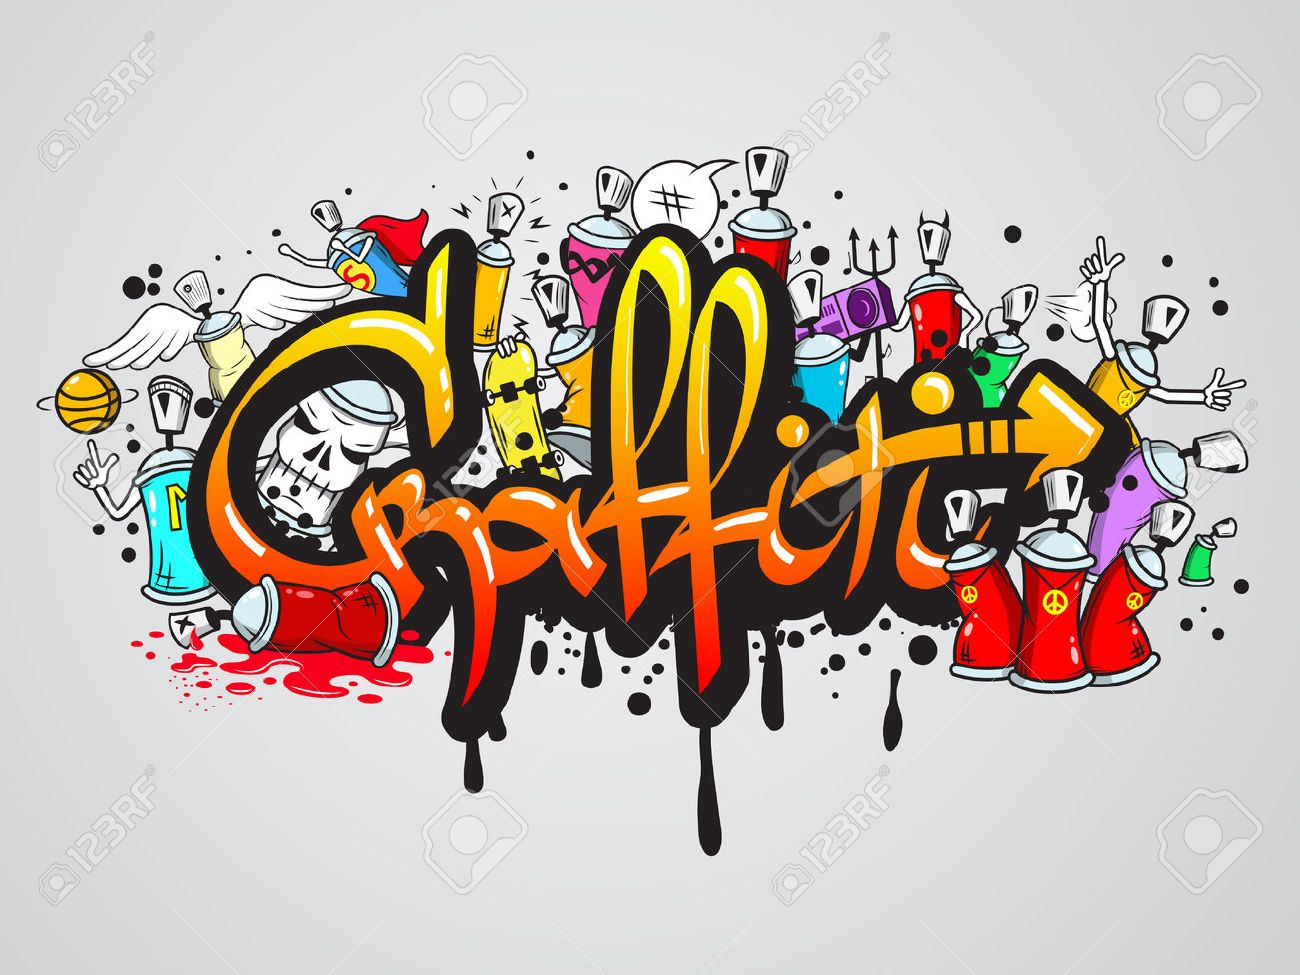 Decorative graffiti art spray paint letters and characters composition abstract wall artwork drawing sketch grunge vector